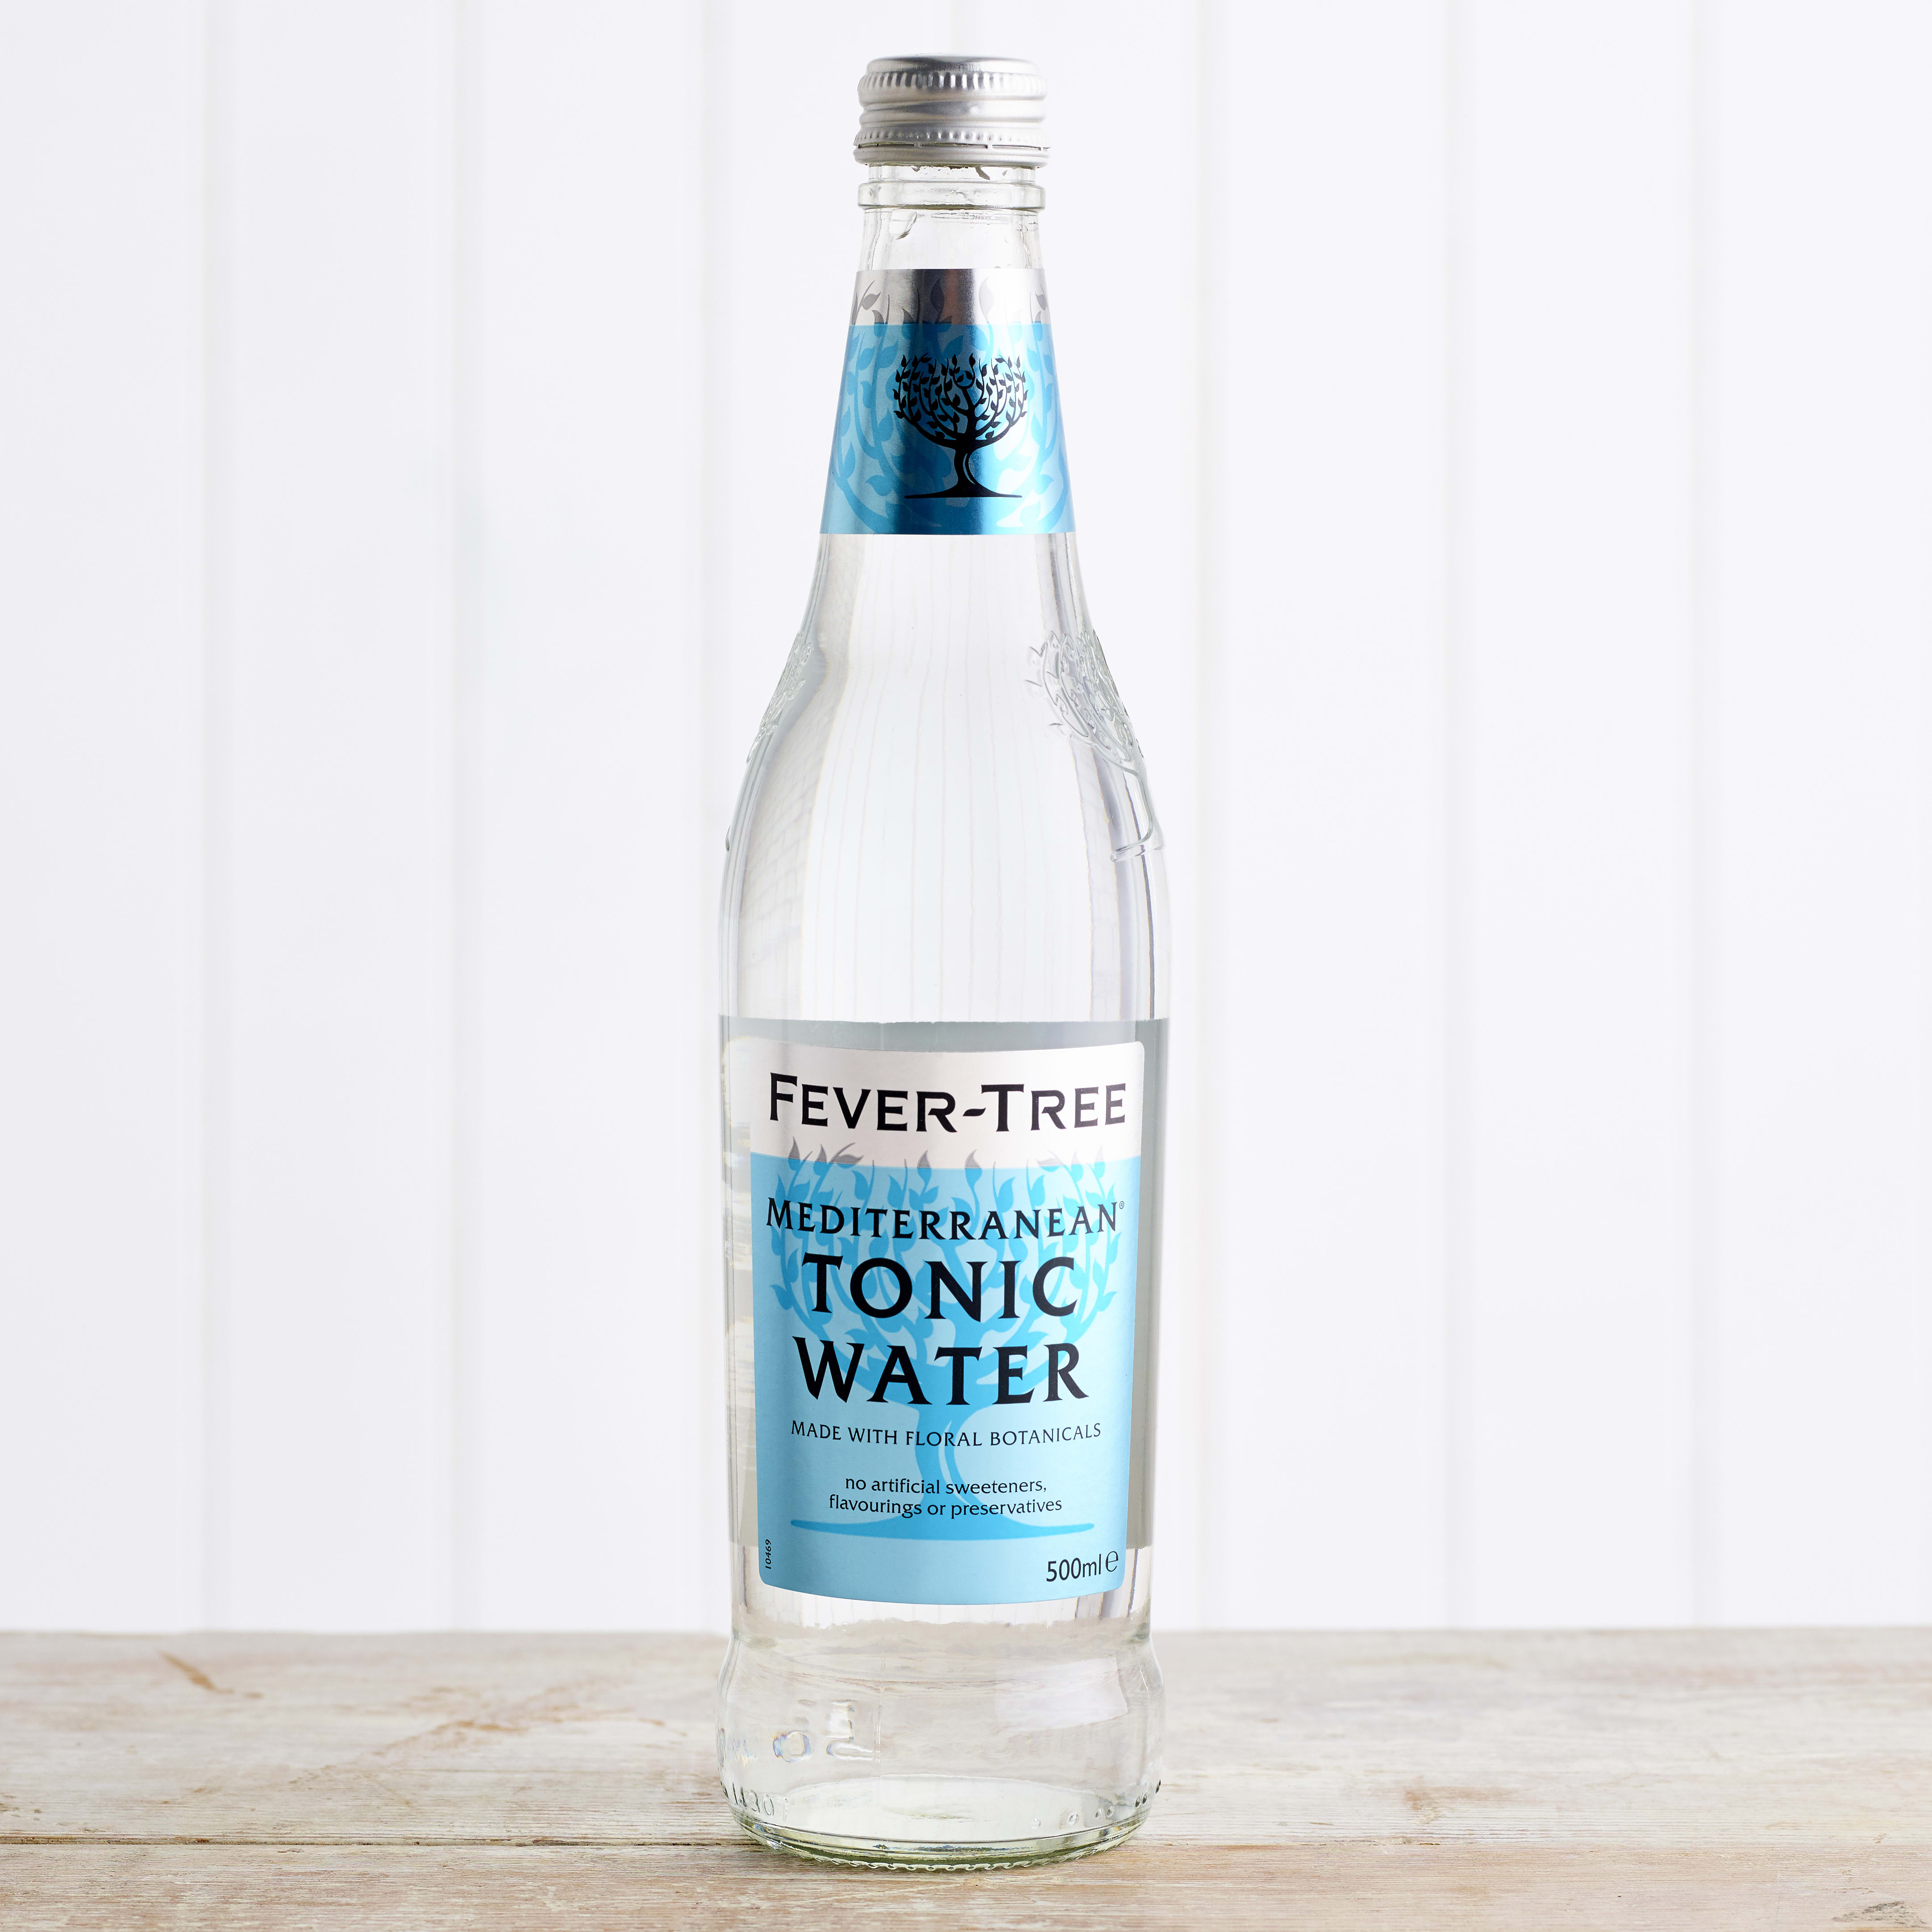 Fever-Tree Mediterranean Tonic Water in Glass, 500ml